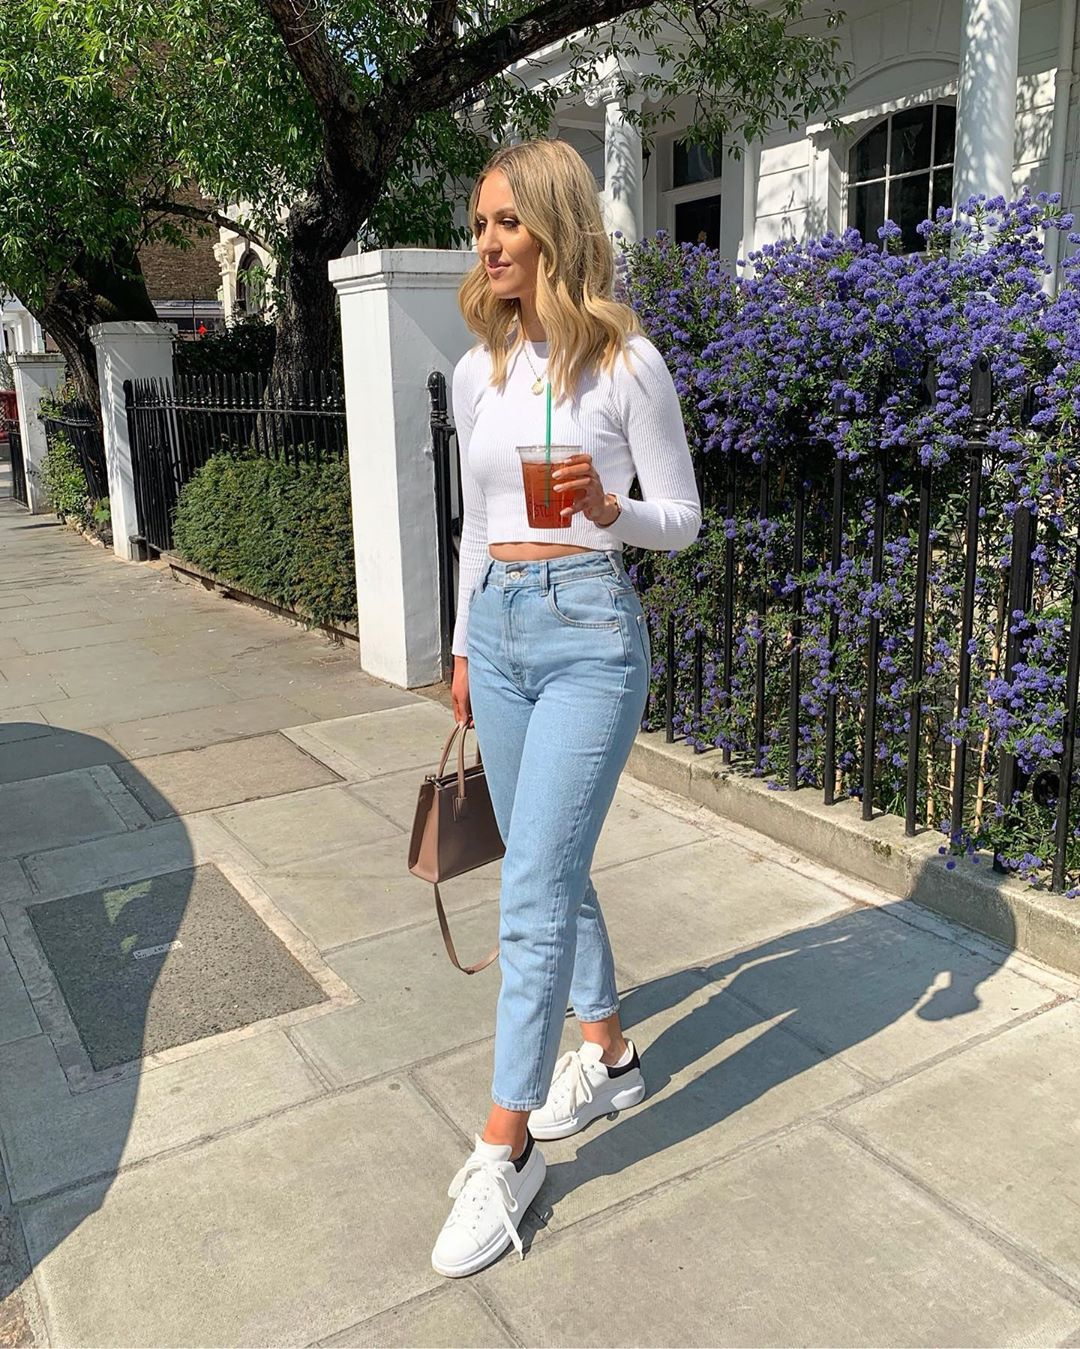 jeans high waisted jeans zara white sneakers bag white top long sleeves crop tops